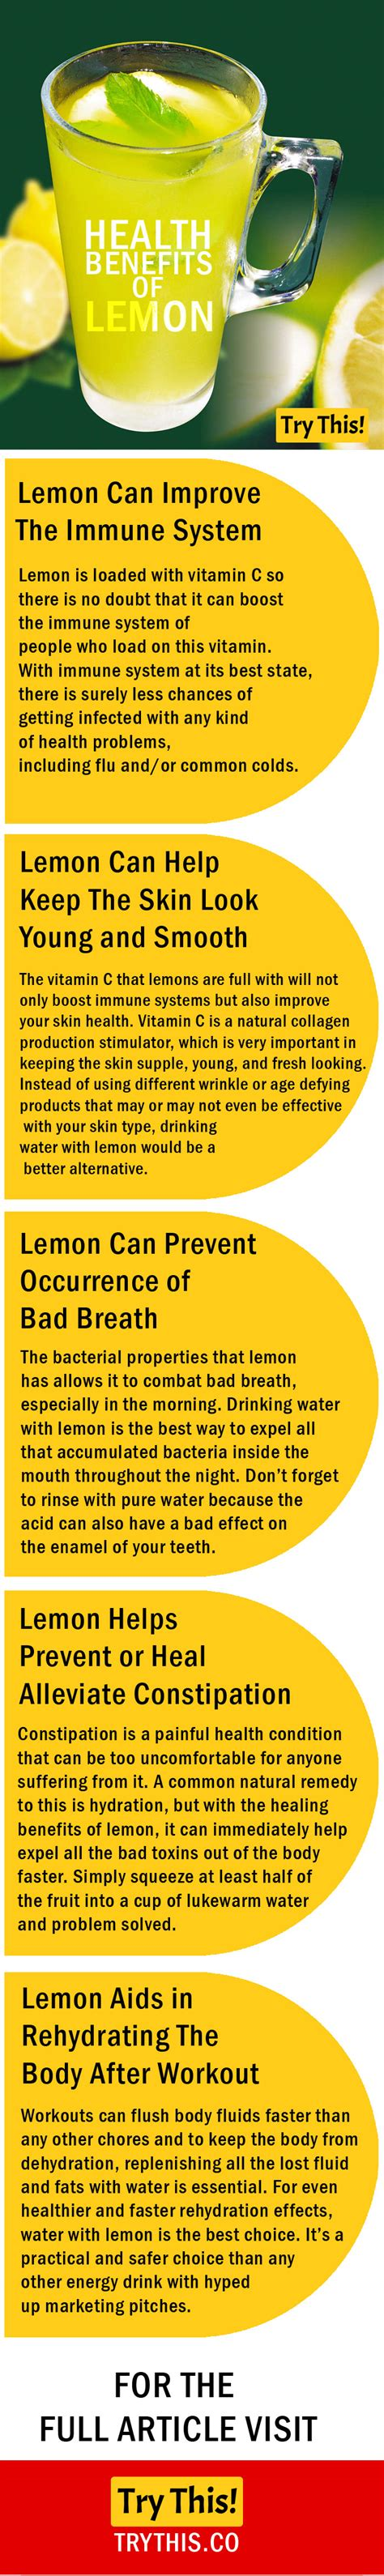 Benefits Of You Should About by 5 Health Benefits Of Lemon You Should About Health